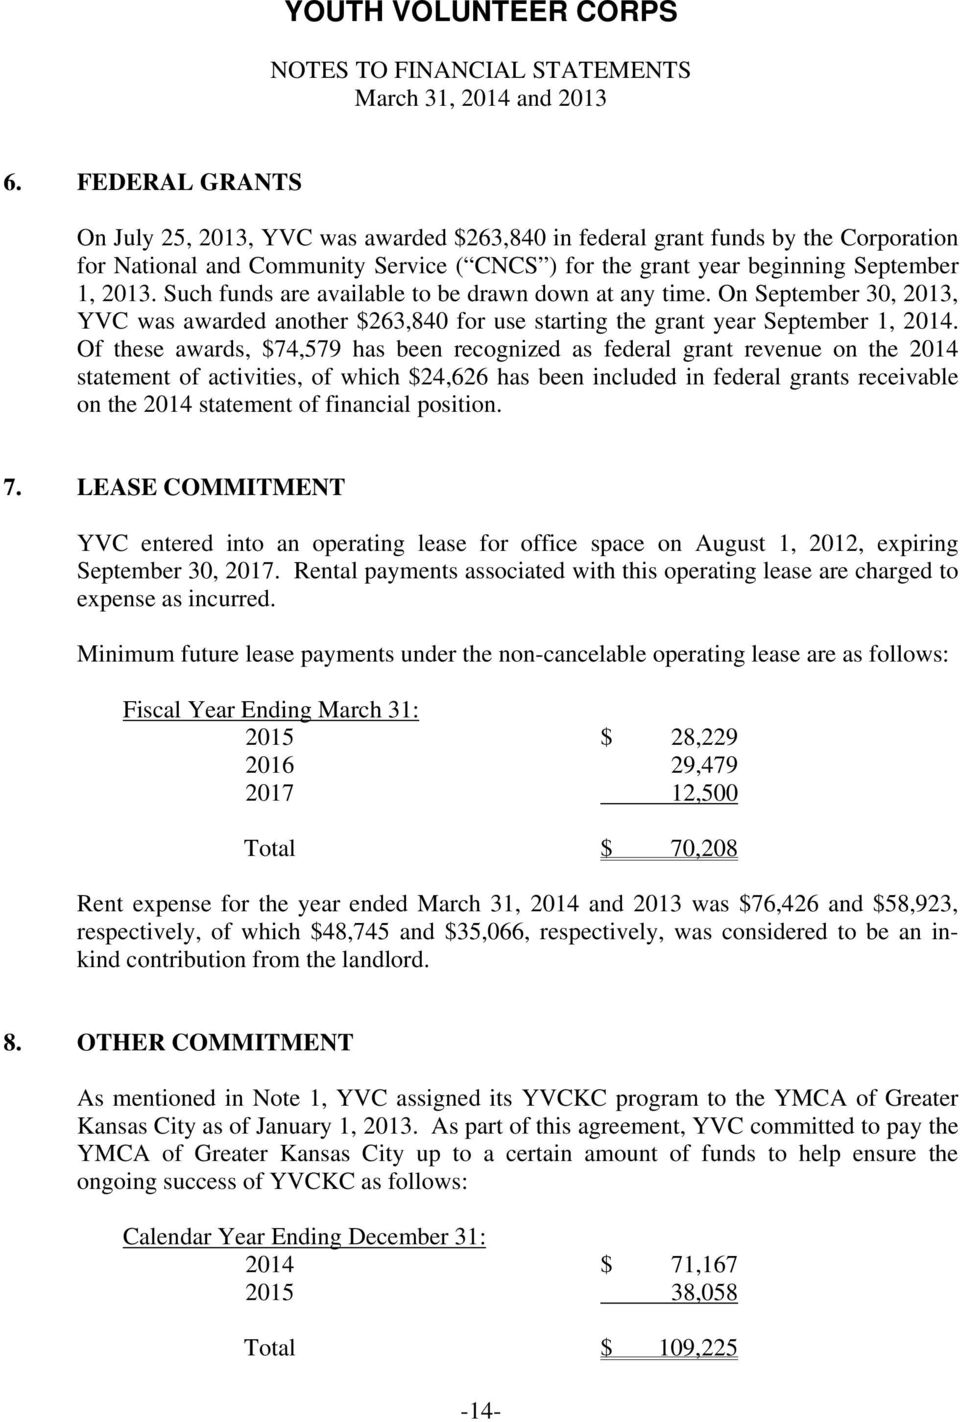 Such funds are available to be drawn down at any time. On September 30, 2013, YVC was awarded another $263,840 for use starting the grant year September 1, 2014.